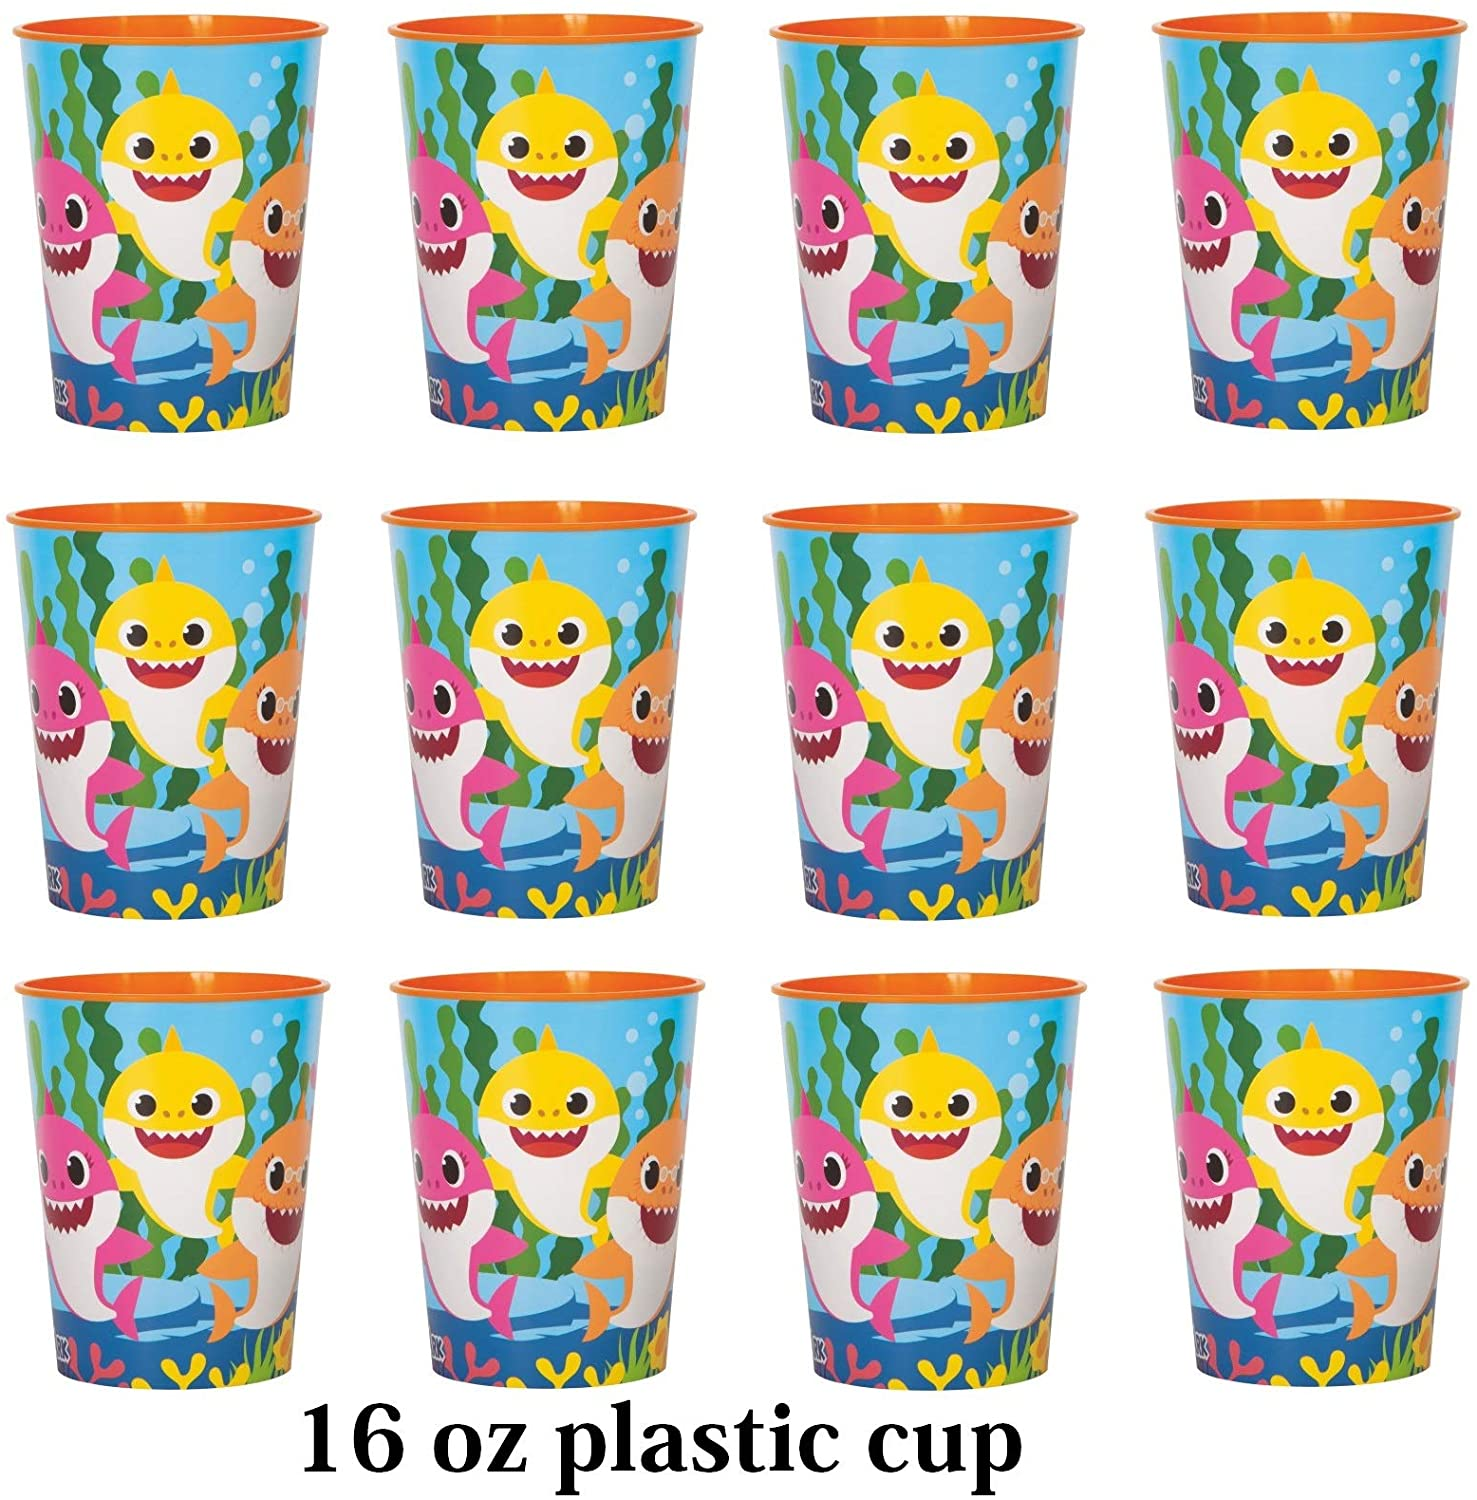 Four-seasonstore Lot of 12 Baby Shark 16oz Party Plastic Cup ~Party Favor Supplies~ Licensed Product